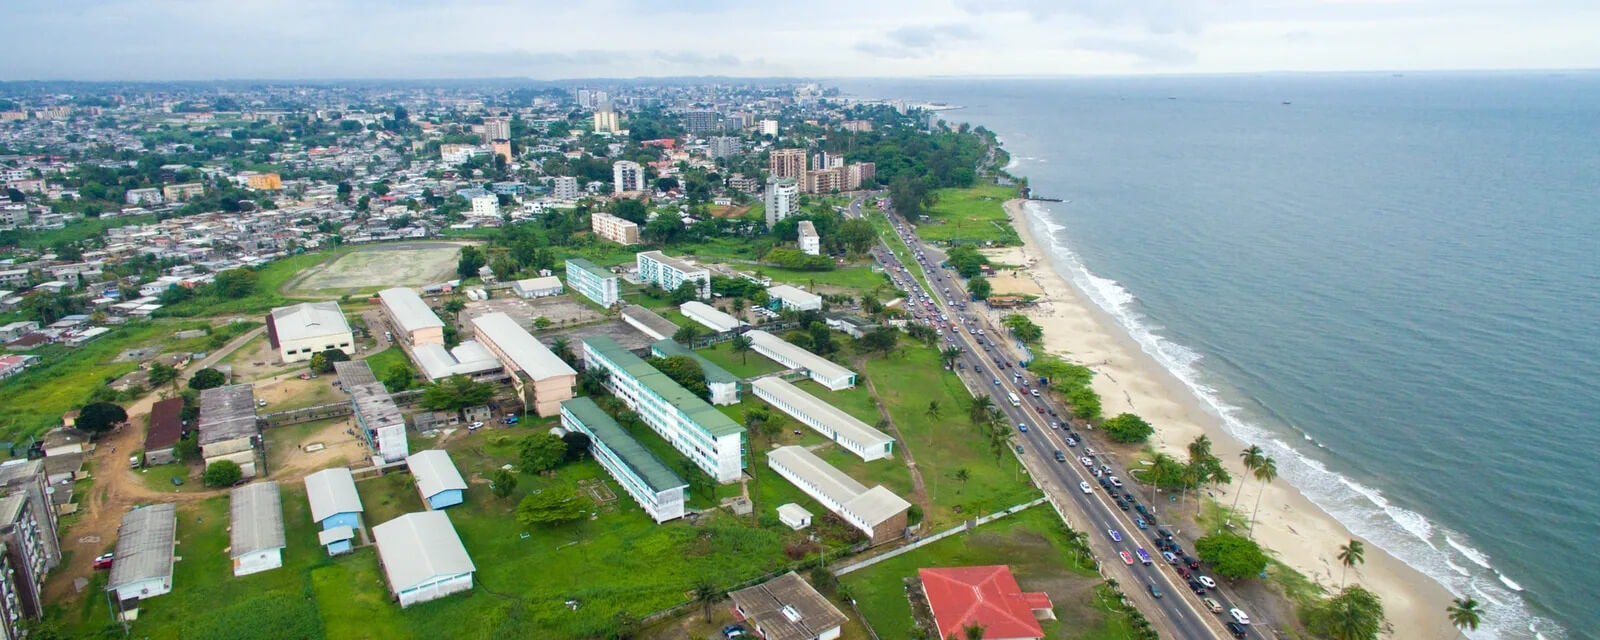 Cityscape of Libreville City